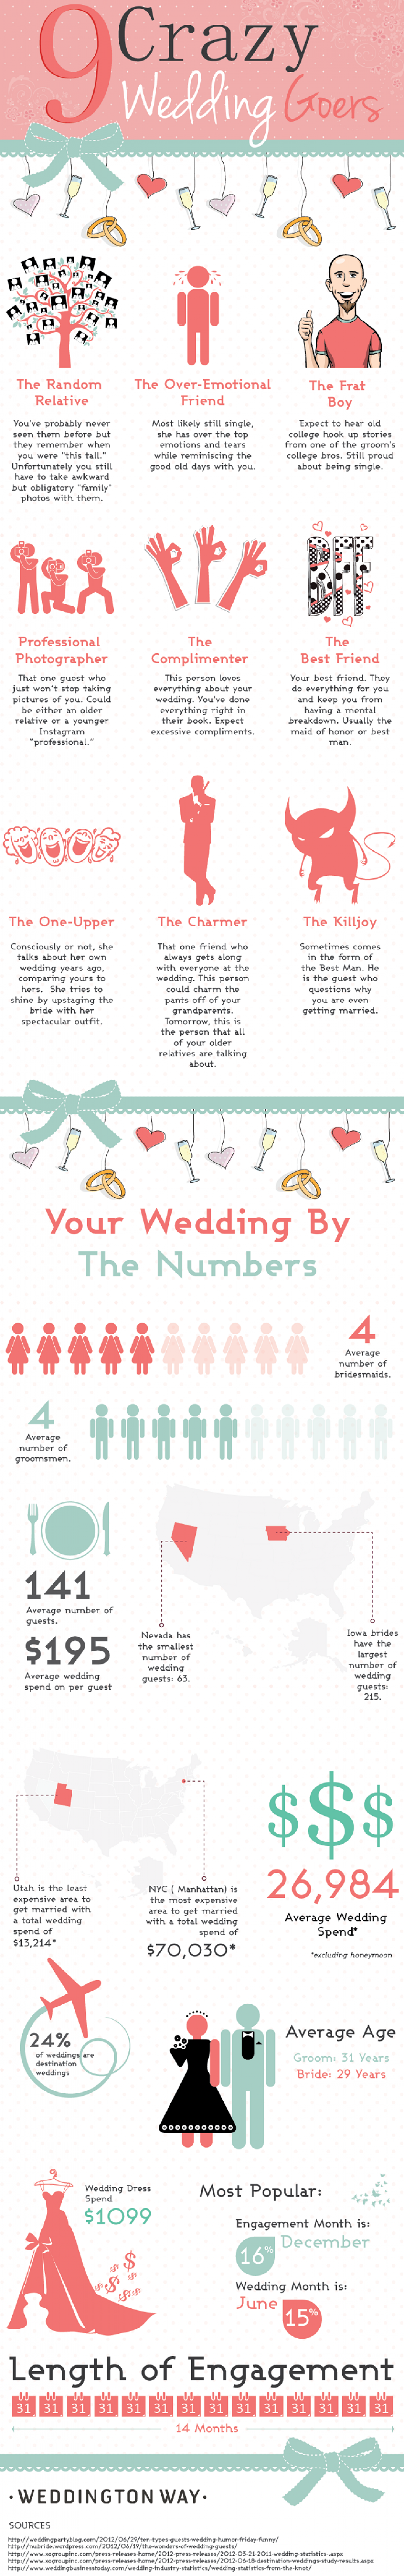 The 9 Types of Crazy Wedding Goers Infographic